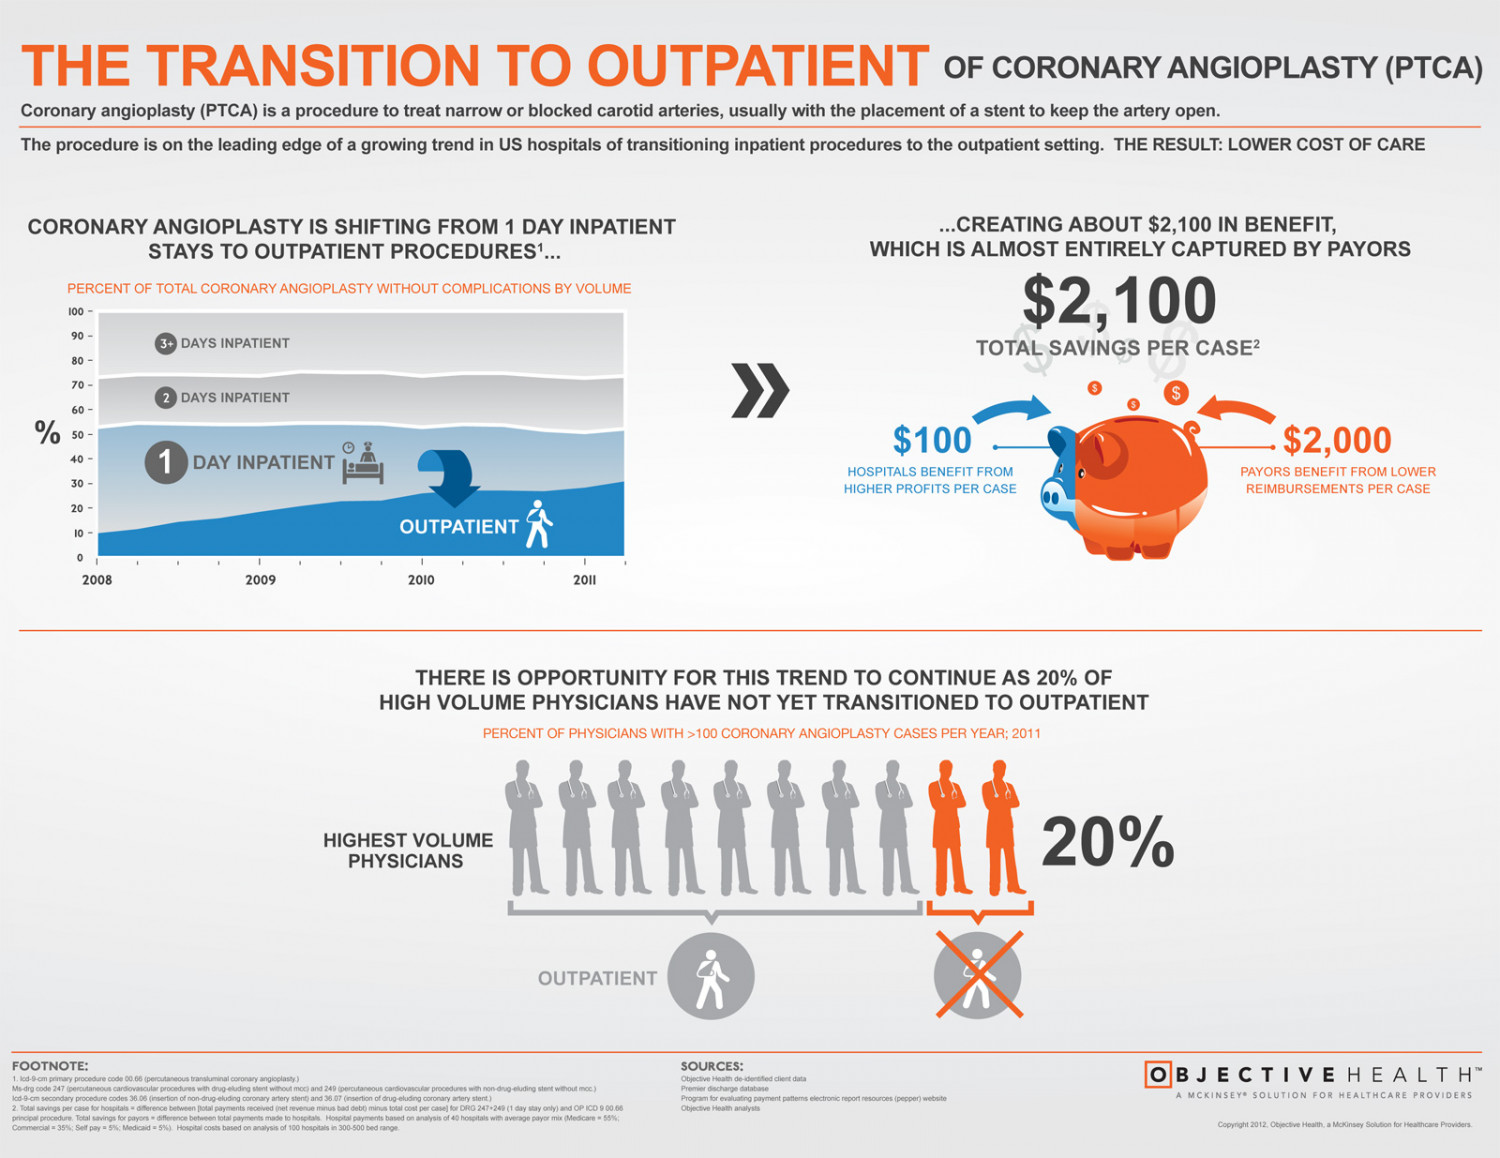 The Transition to Outpatient of Coronary Angioplasty (PTCA) Infographic